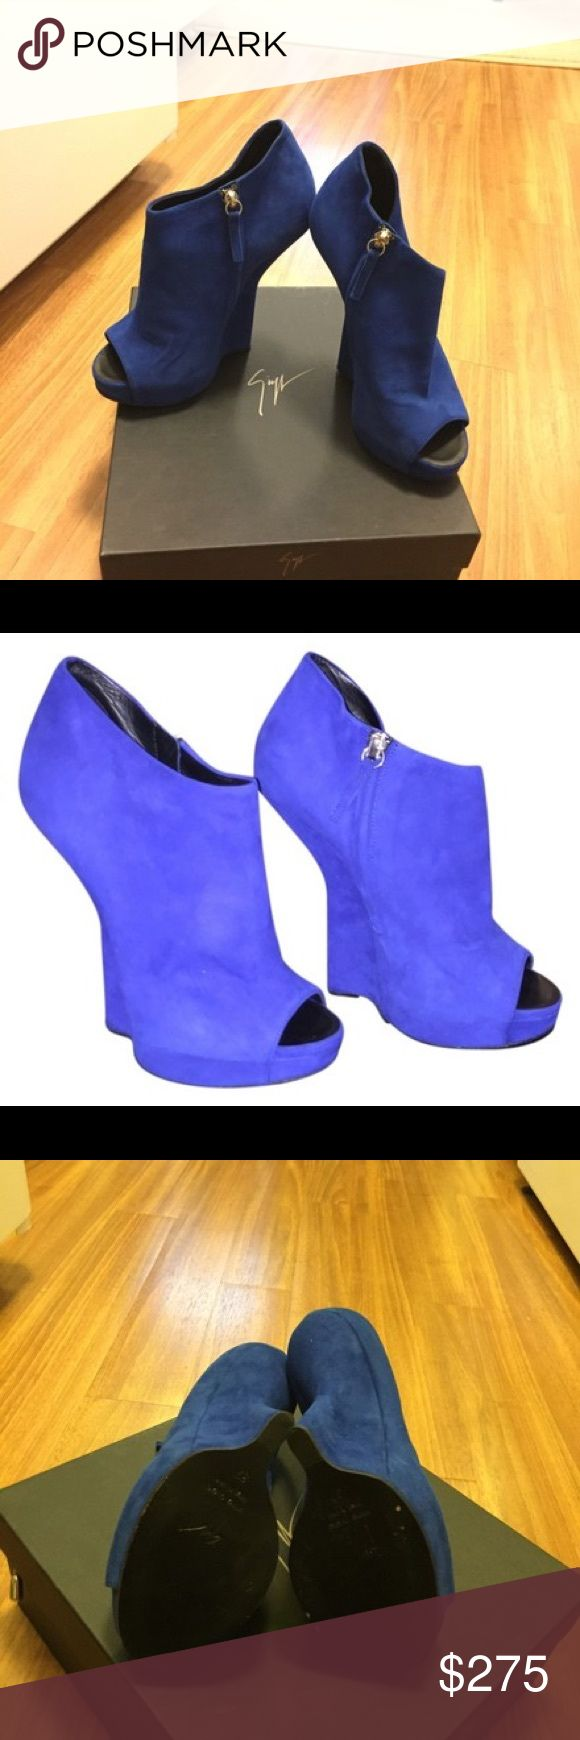 Giuseppe Zanotti Suede Sculpted Wedge Ankle Boots. Giuseppe Zanotti Blue Suede Sculpted Wedge Ankle Boots. Size 37 comes with box and dust bag. Worn once pristine condition minimal wear on bottom of shoe. no swaps Giuseppe Zanotti Shoes